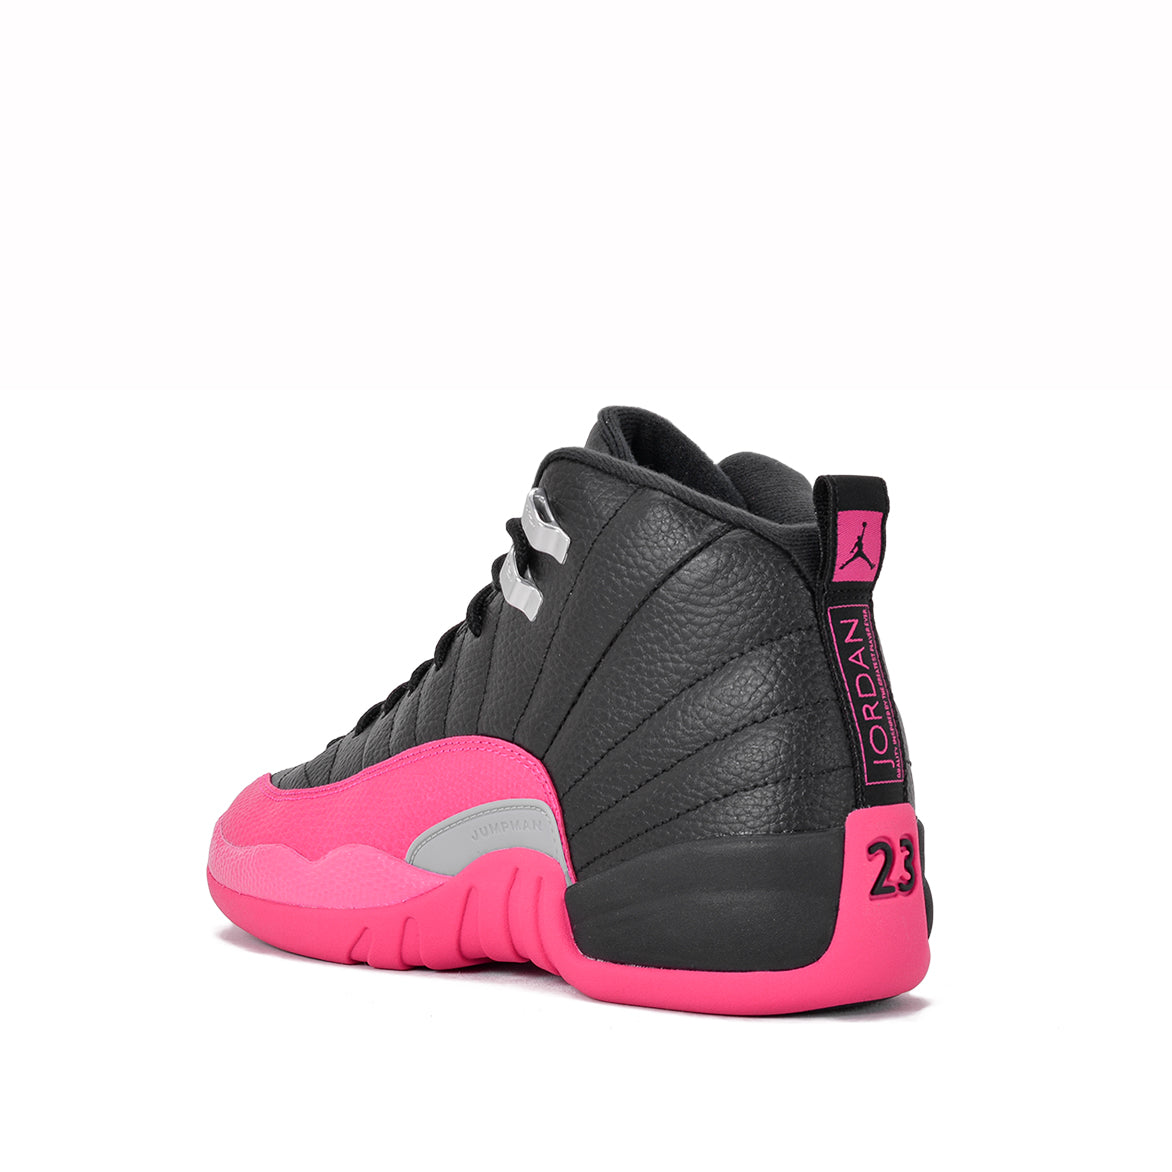 "AIR JORDAN 12 RETRO (GG) ""DEADLY PINK"""